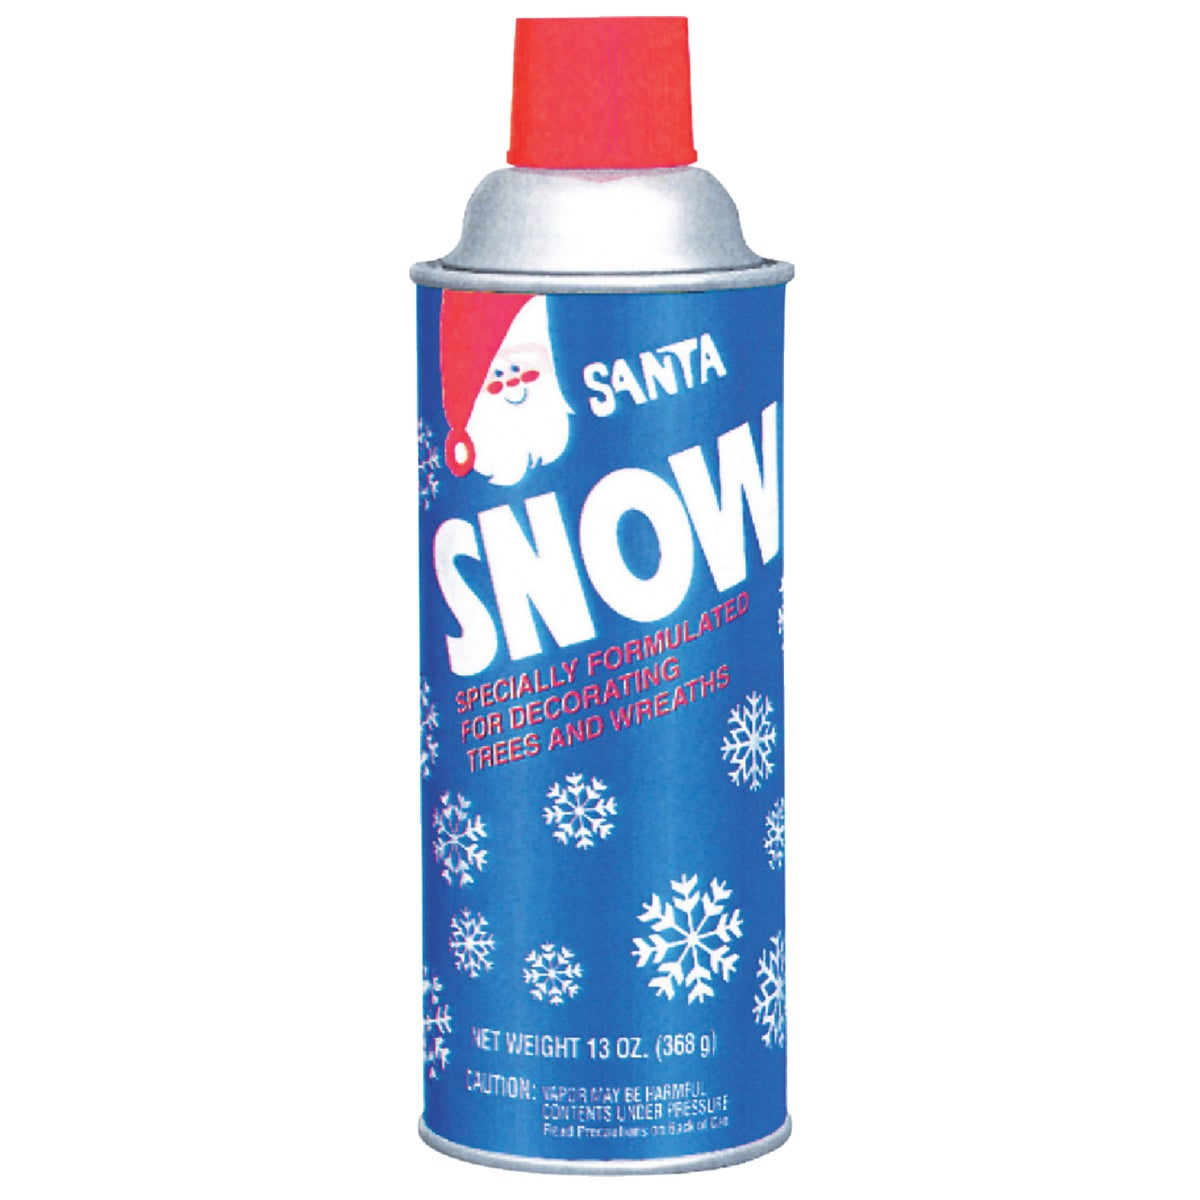 13OZ SNOW SPRAY